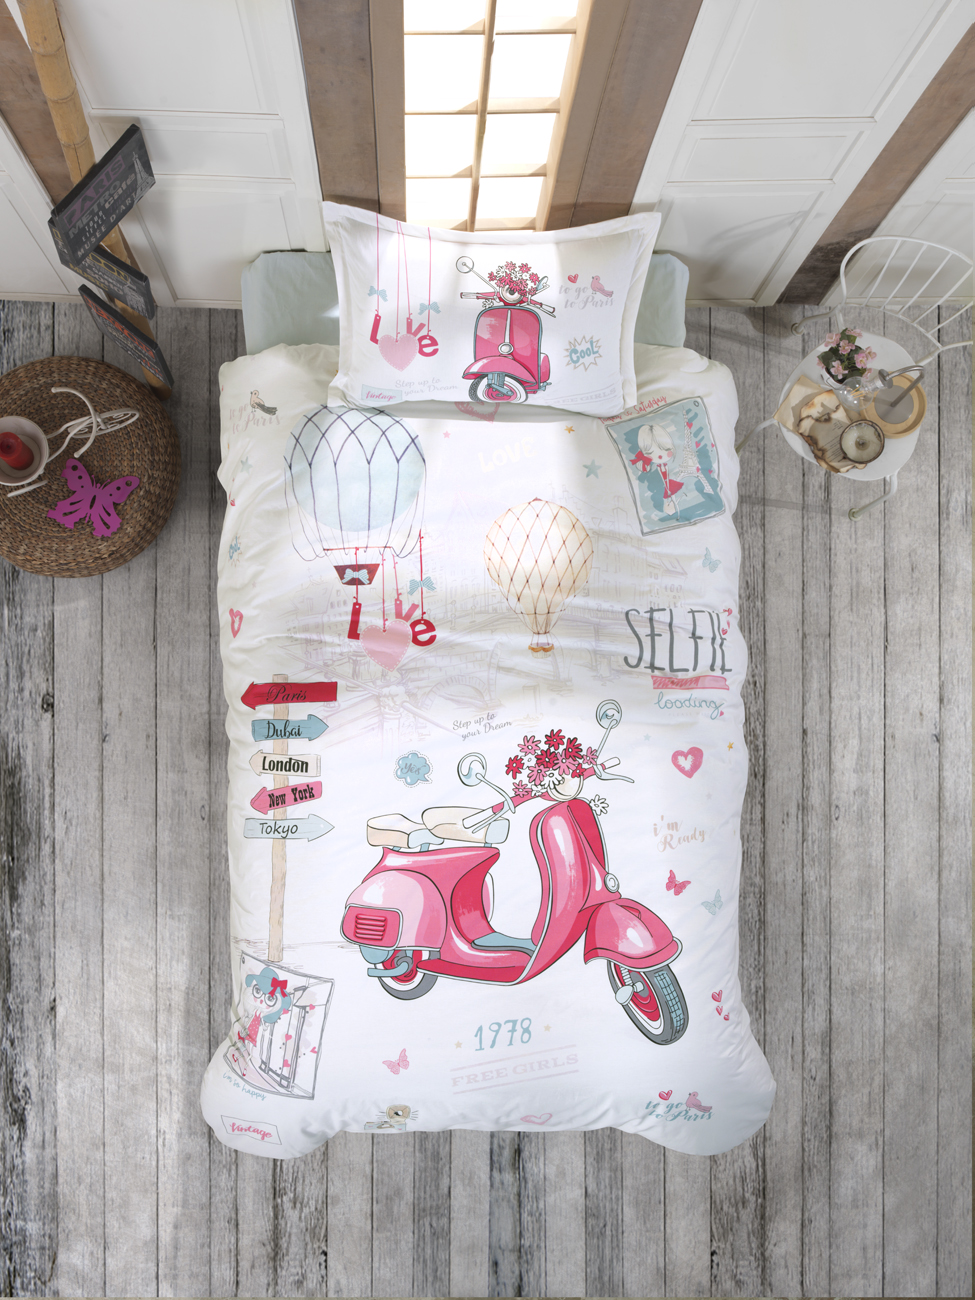 Quilt Cover Cotton Quilt Cover King Kids Quilt Cover Kids Duvet Cover Quilt Cover Bed Linen Linen Pillow Cover Queen Bed Linen